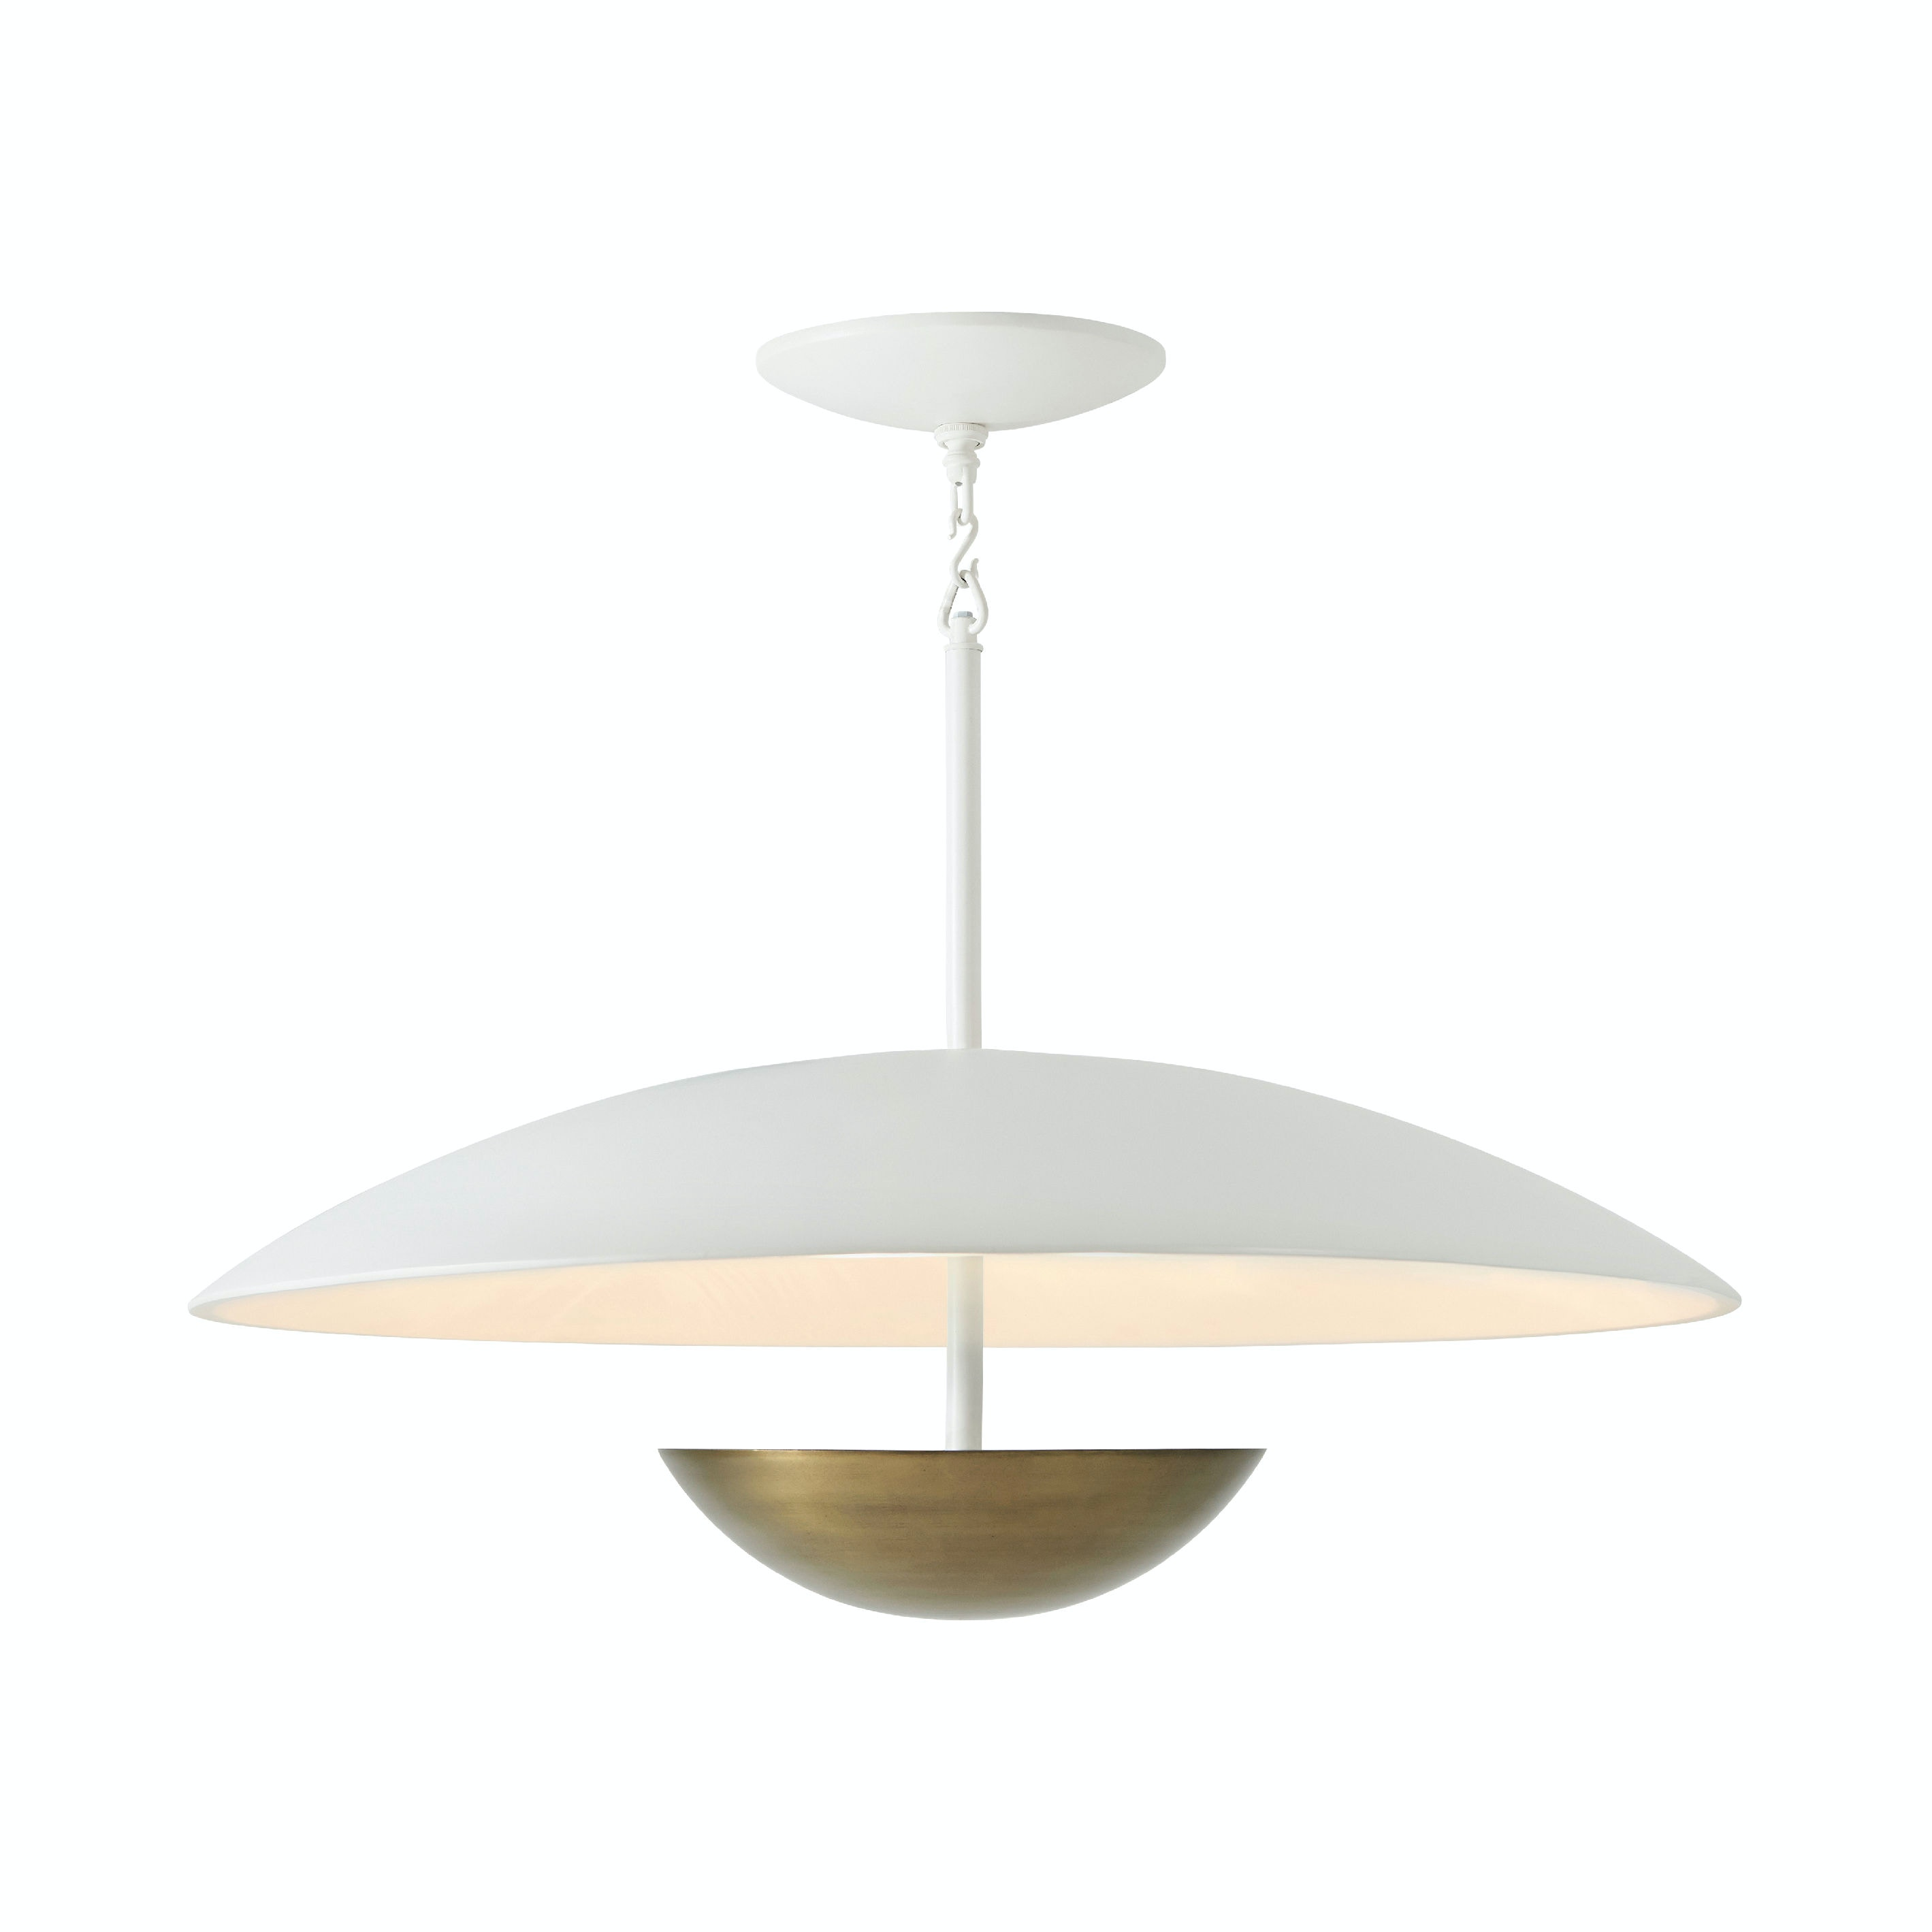 Theodore Alexander Floyd Pendant Light THMB23006 from Walter E. Smithe Furniture + Design  sc 1 st  Walter E. Smithe & Floyd Pendant Light THMB23006